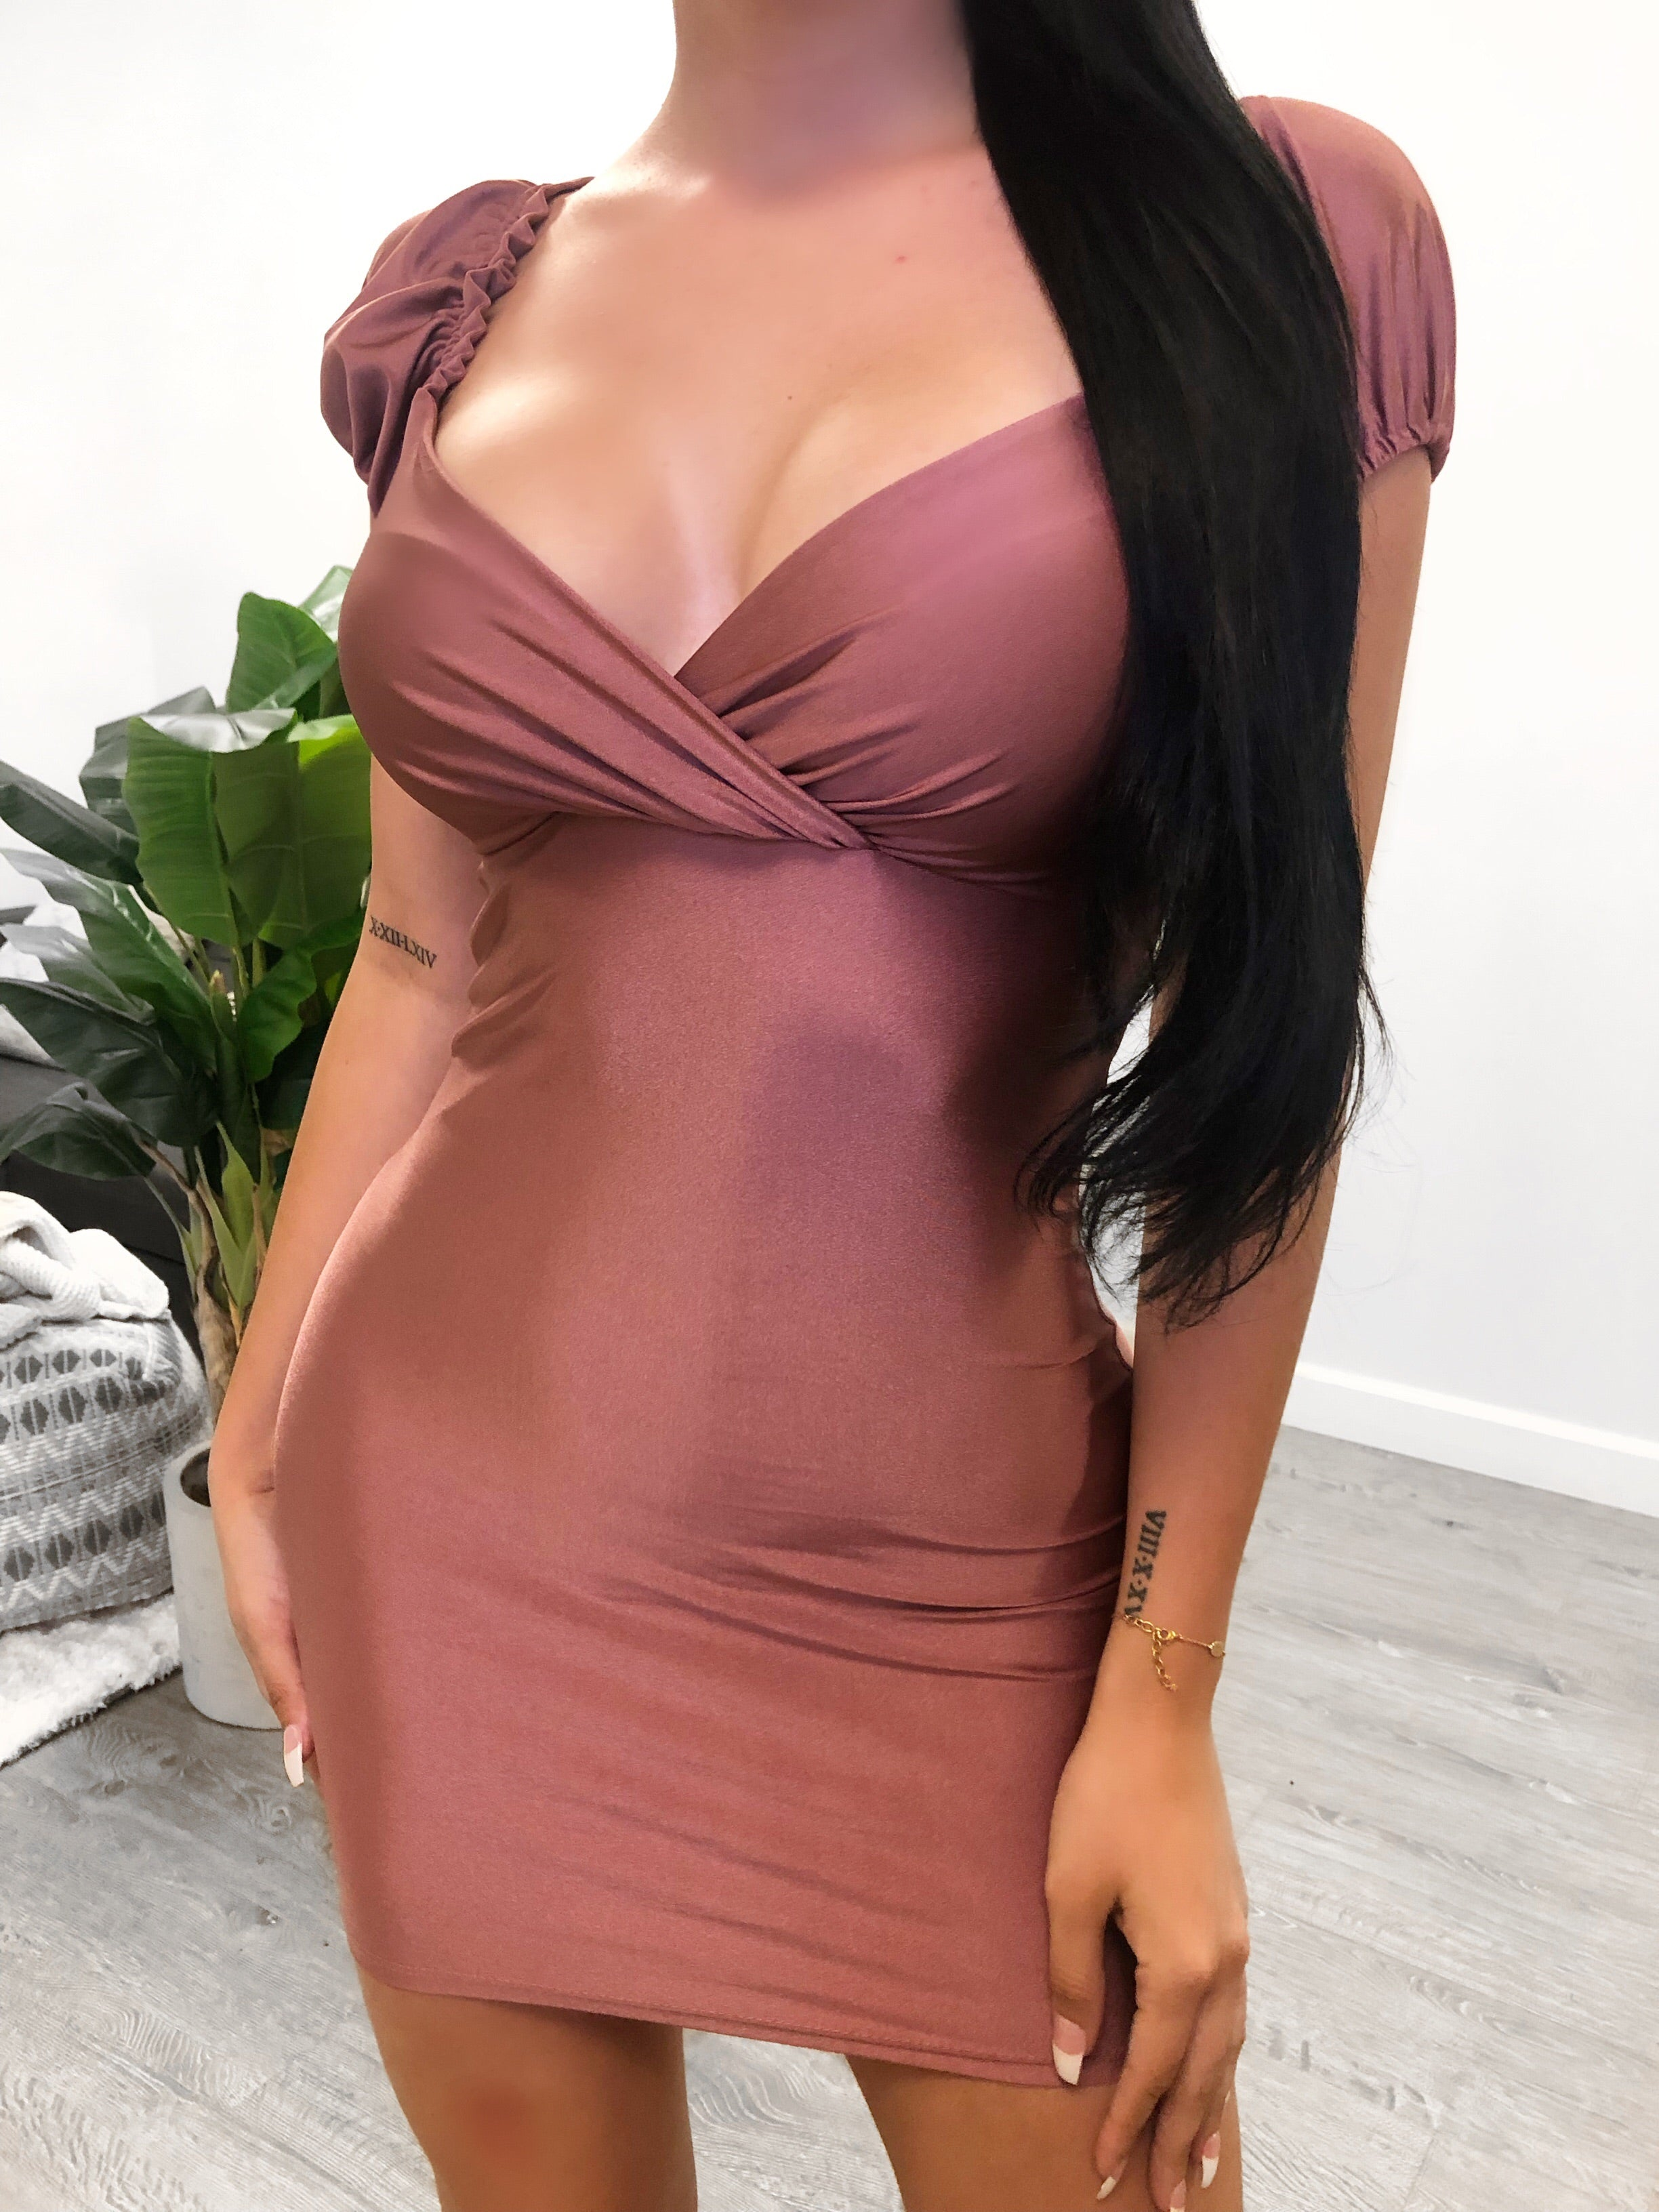 mauve stretchy midi dress. Can be worn off the shoulder or normal. Comes in four colors. Low cut v front. Can be worn with a strapless bra.